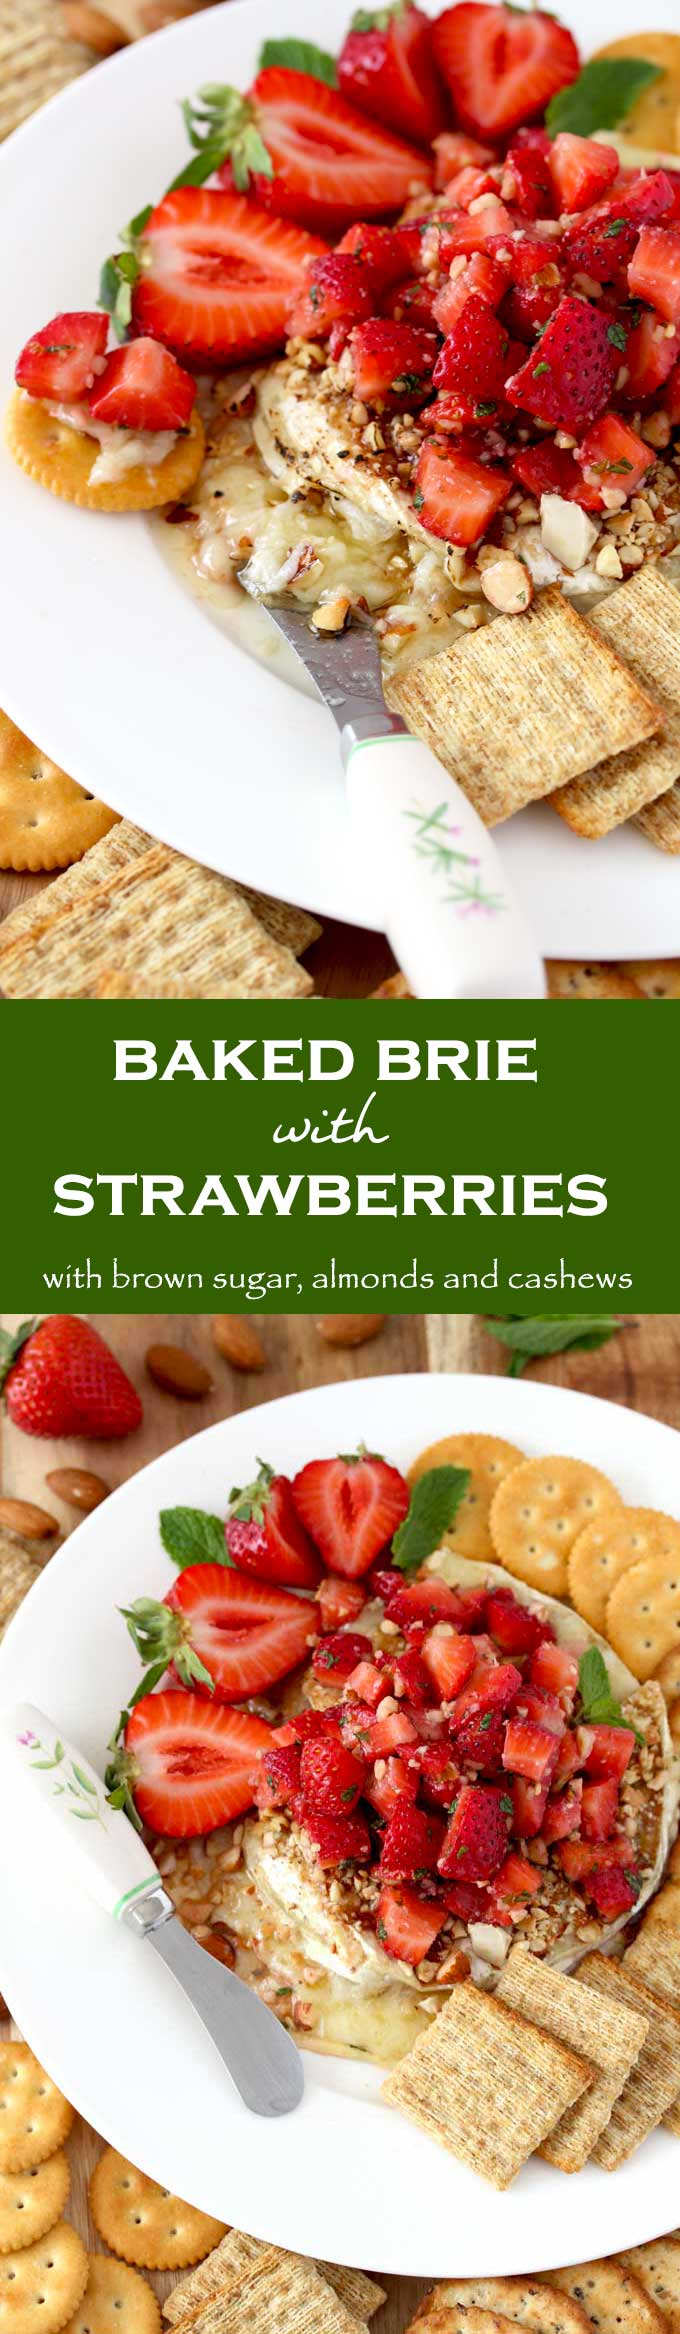 This Baked Brie Cheese with Strawberries is so easy to make and incredibly delicious. Brie cheese is stuffed with a mixture of brown sugar, cashews and almonds then bake until warm and gooey. To make it even more amazing, I top it with a fresh balsamic-mint strawberry salsa. #Ad #MomBlogTourFF #snackhappy #appetizer #briecheese #strawberries #bakedbrie #simplydelicious